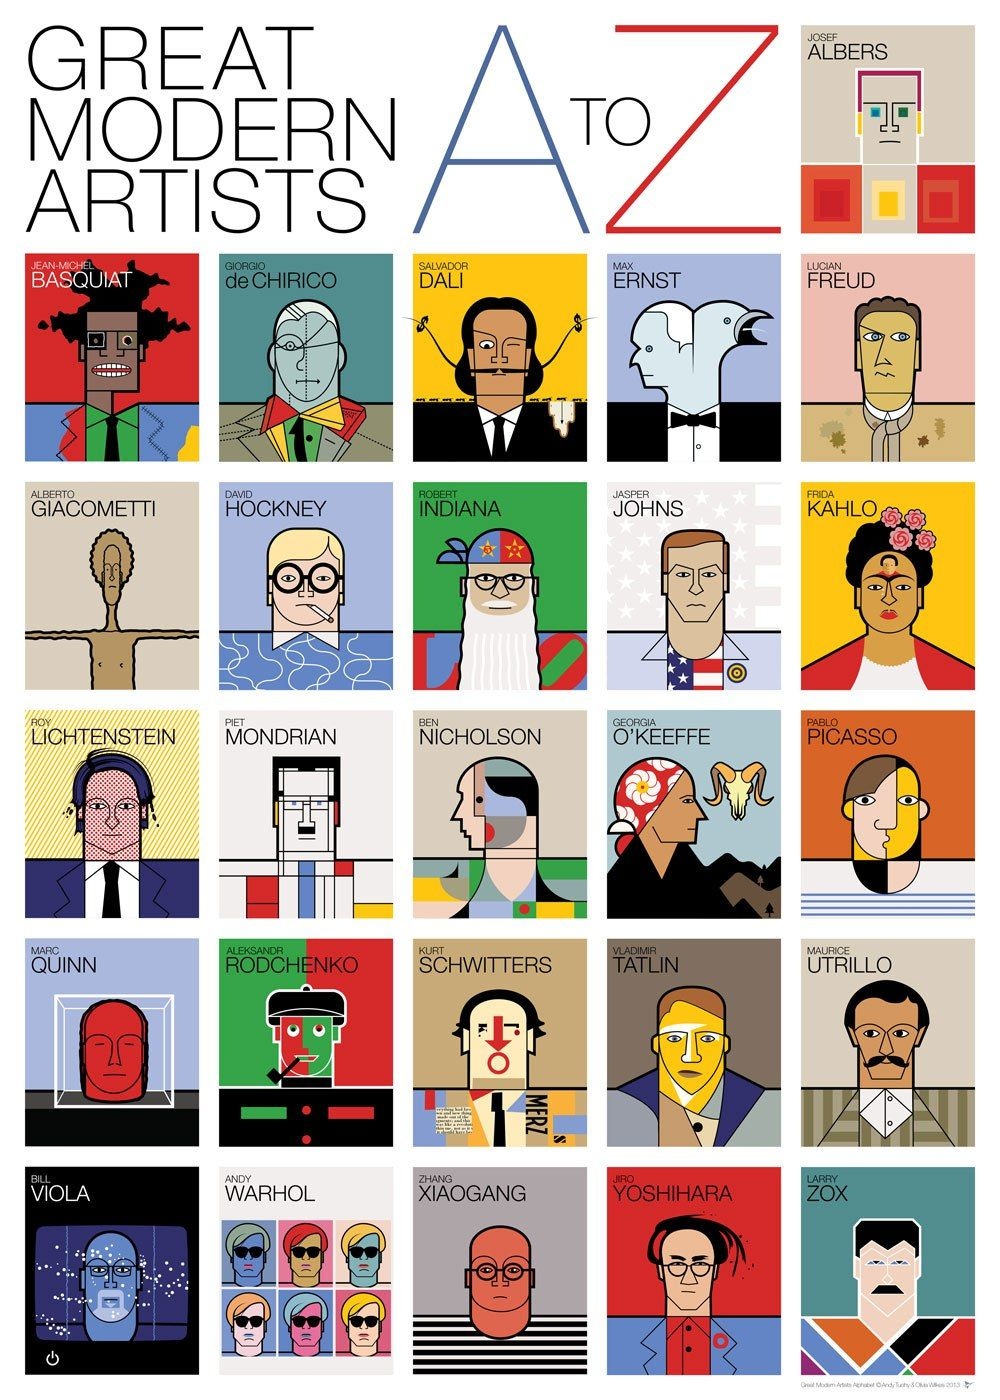 A to Z of great modern artists